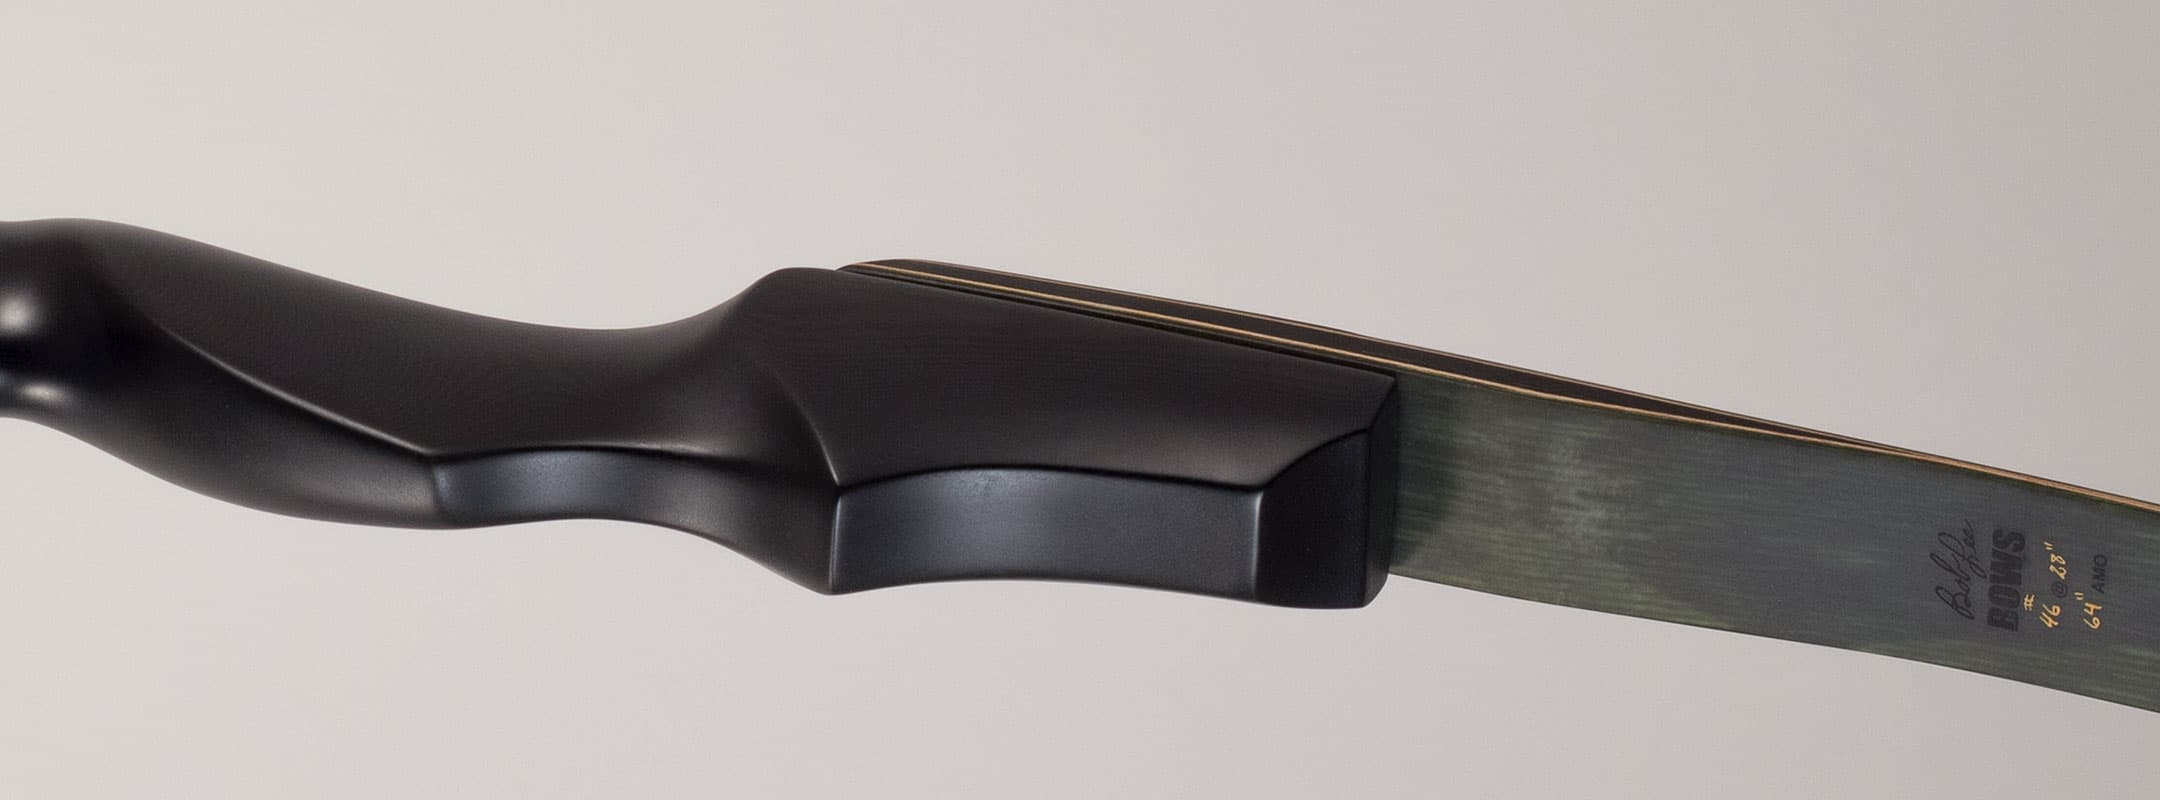 Closeup of high performance handcrafted tradbow - recurve 13291